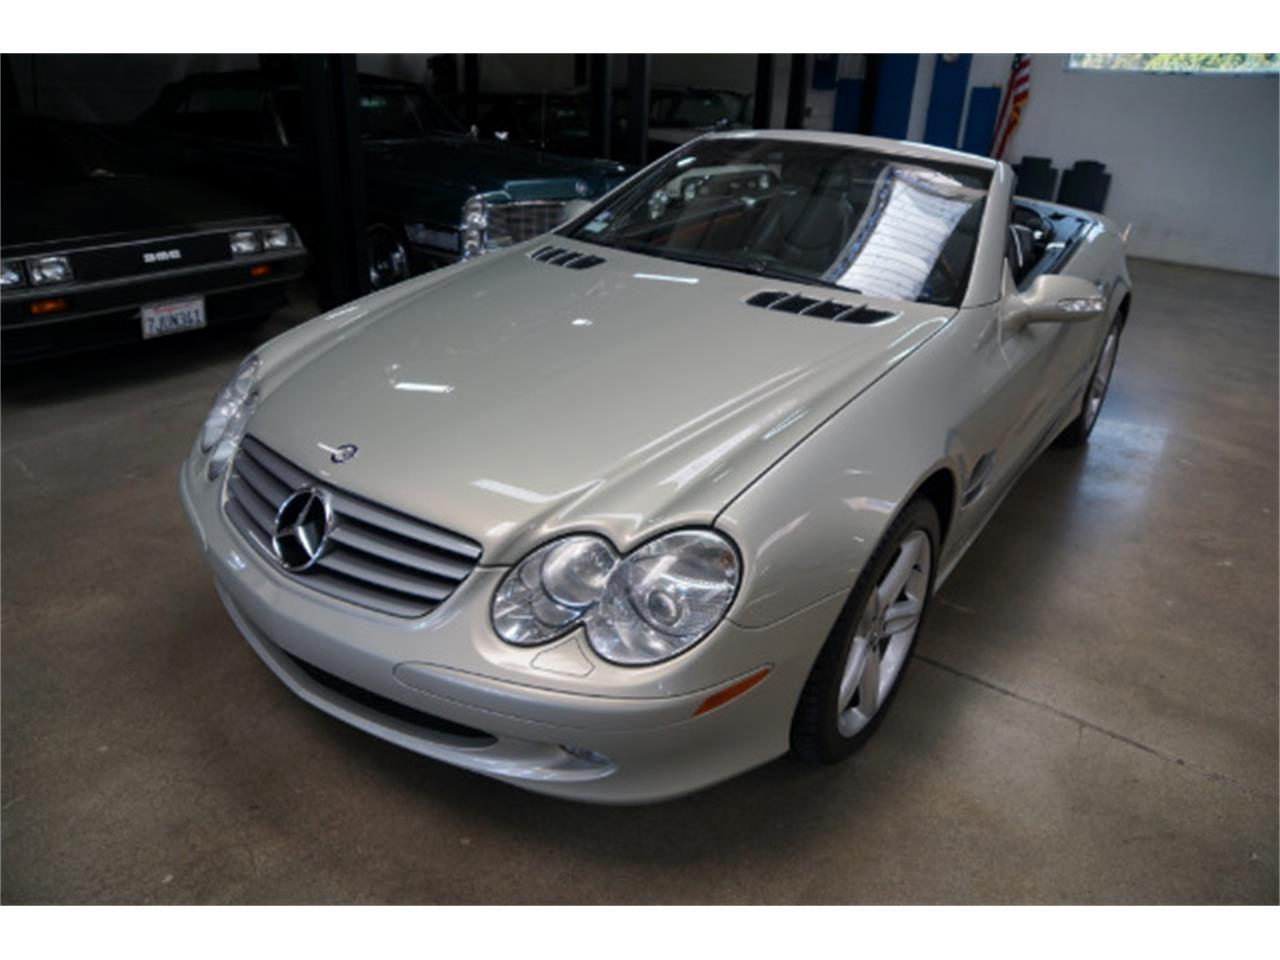 for sale 2003 mercedes-benz sl-class in torrance, california cars - torrance, ca at geebo